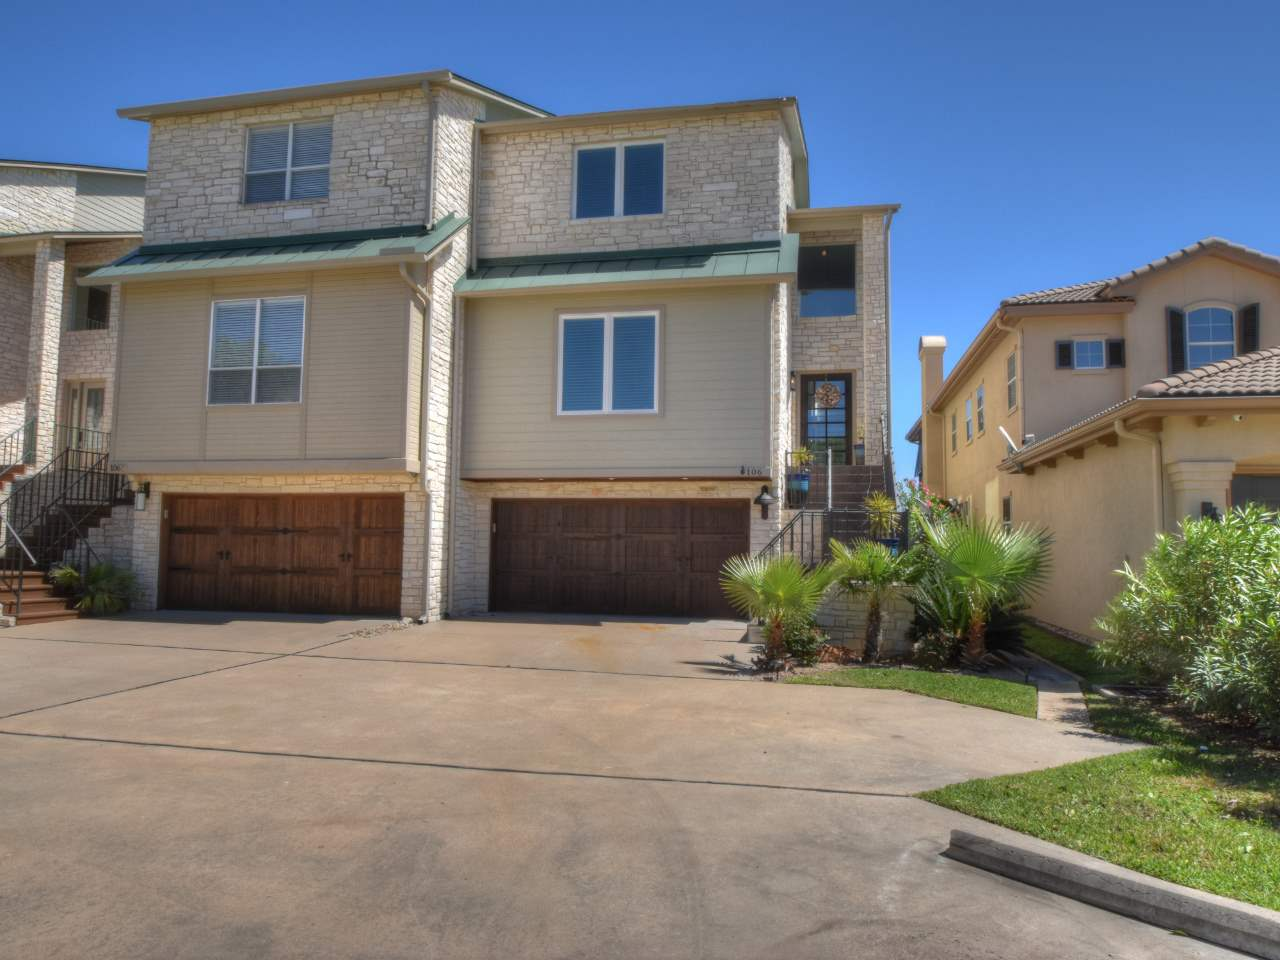 Casa unifamiliar adosada (Townhouse) por un Venta en 106 Cove East #D Horseshoe Bay, Texas 78657 Estados Unidos